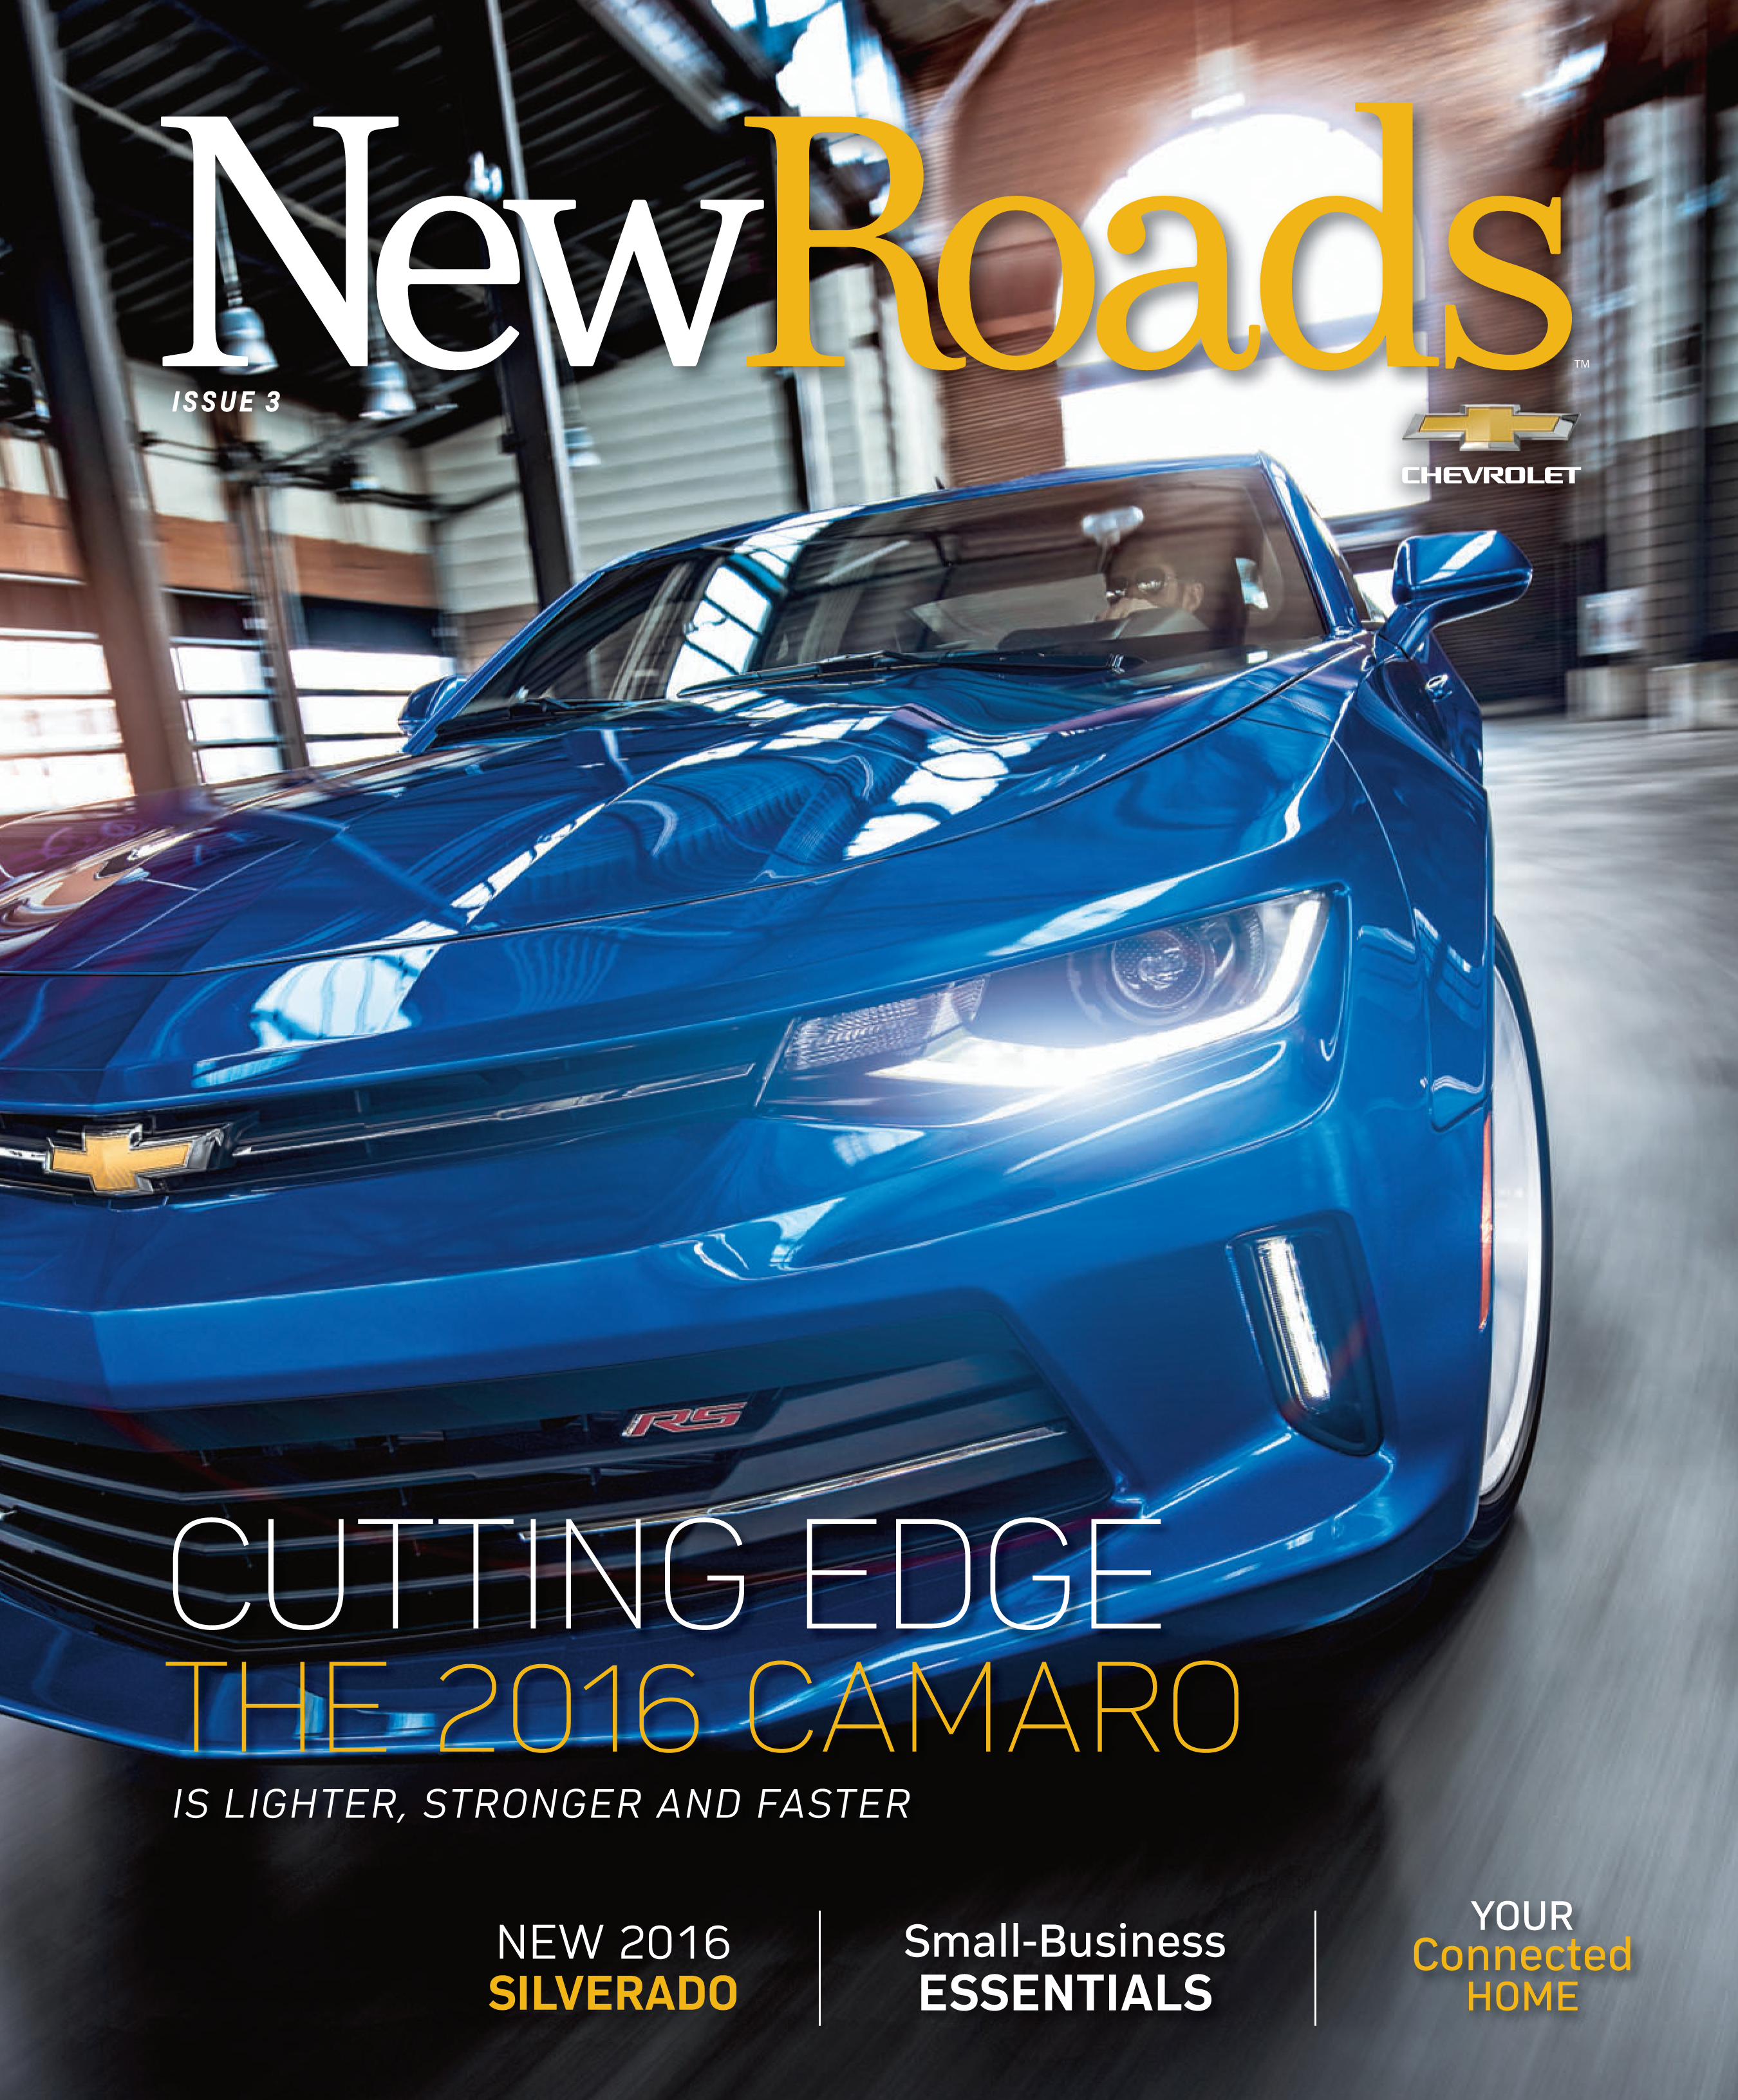 Chevrolet\'s New Roads Magazine | Issue 3 [Free PDF Download] | Chevy ...